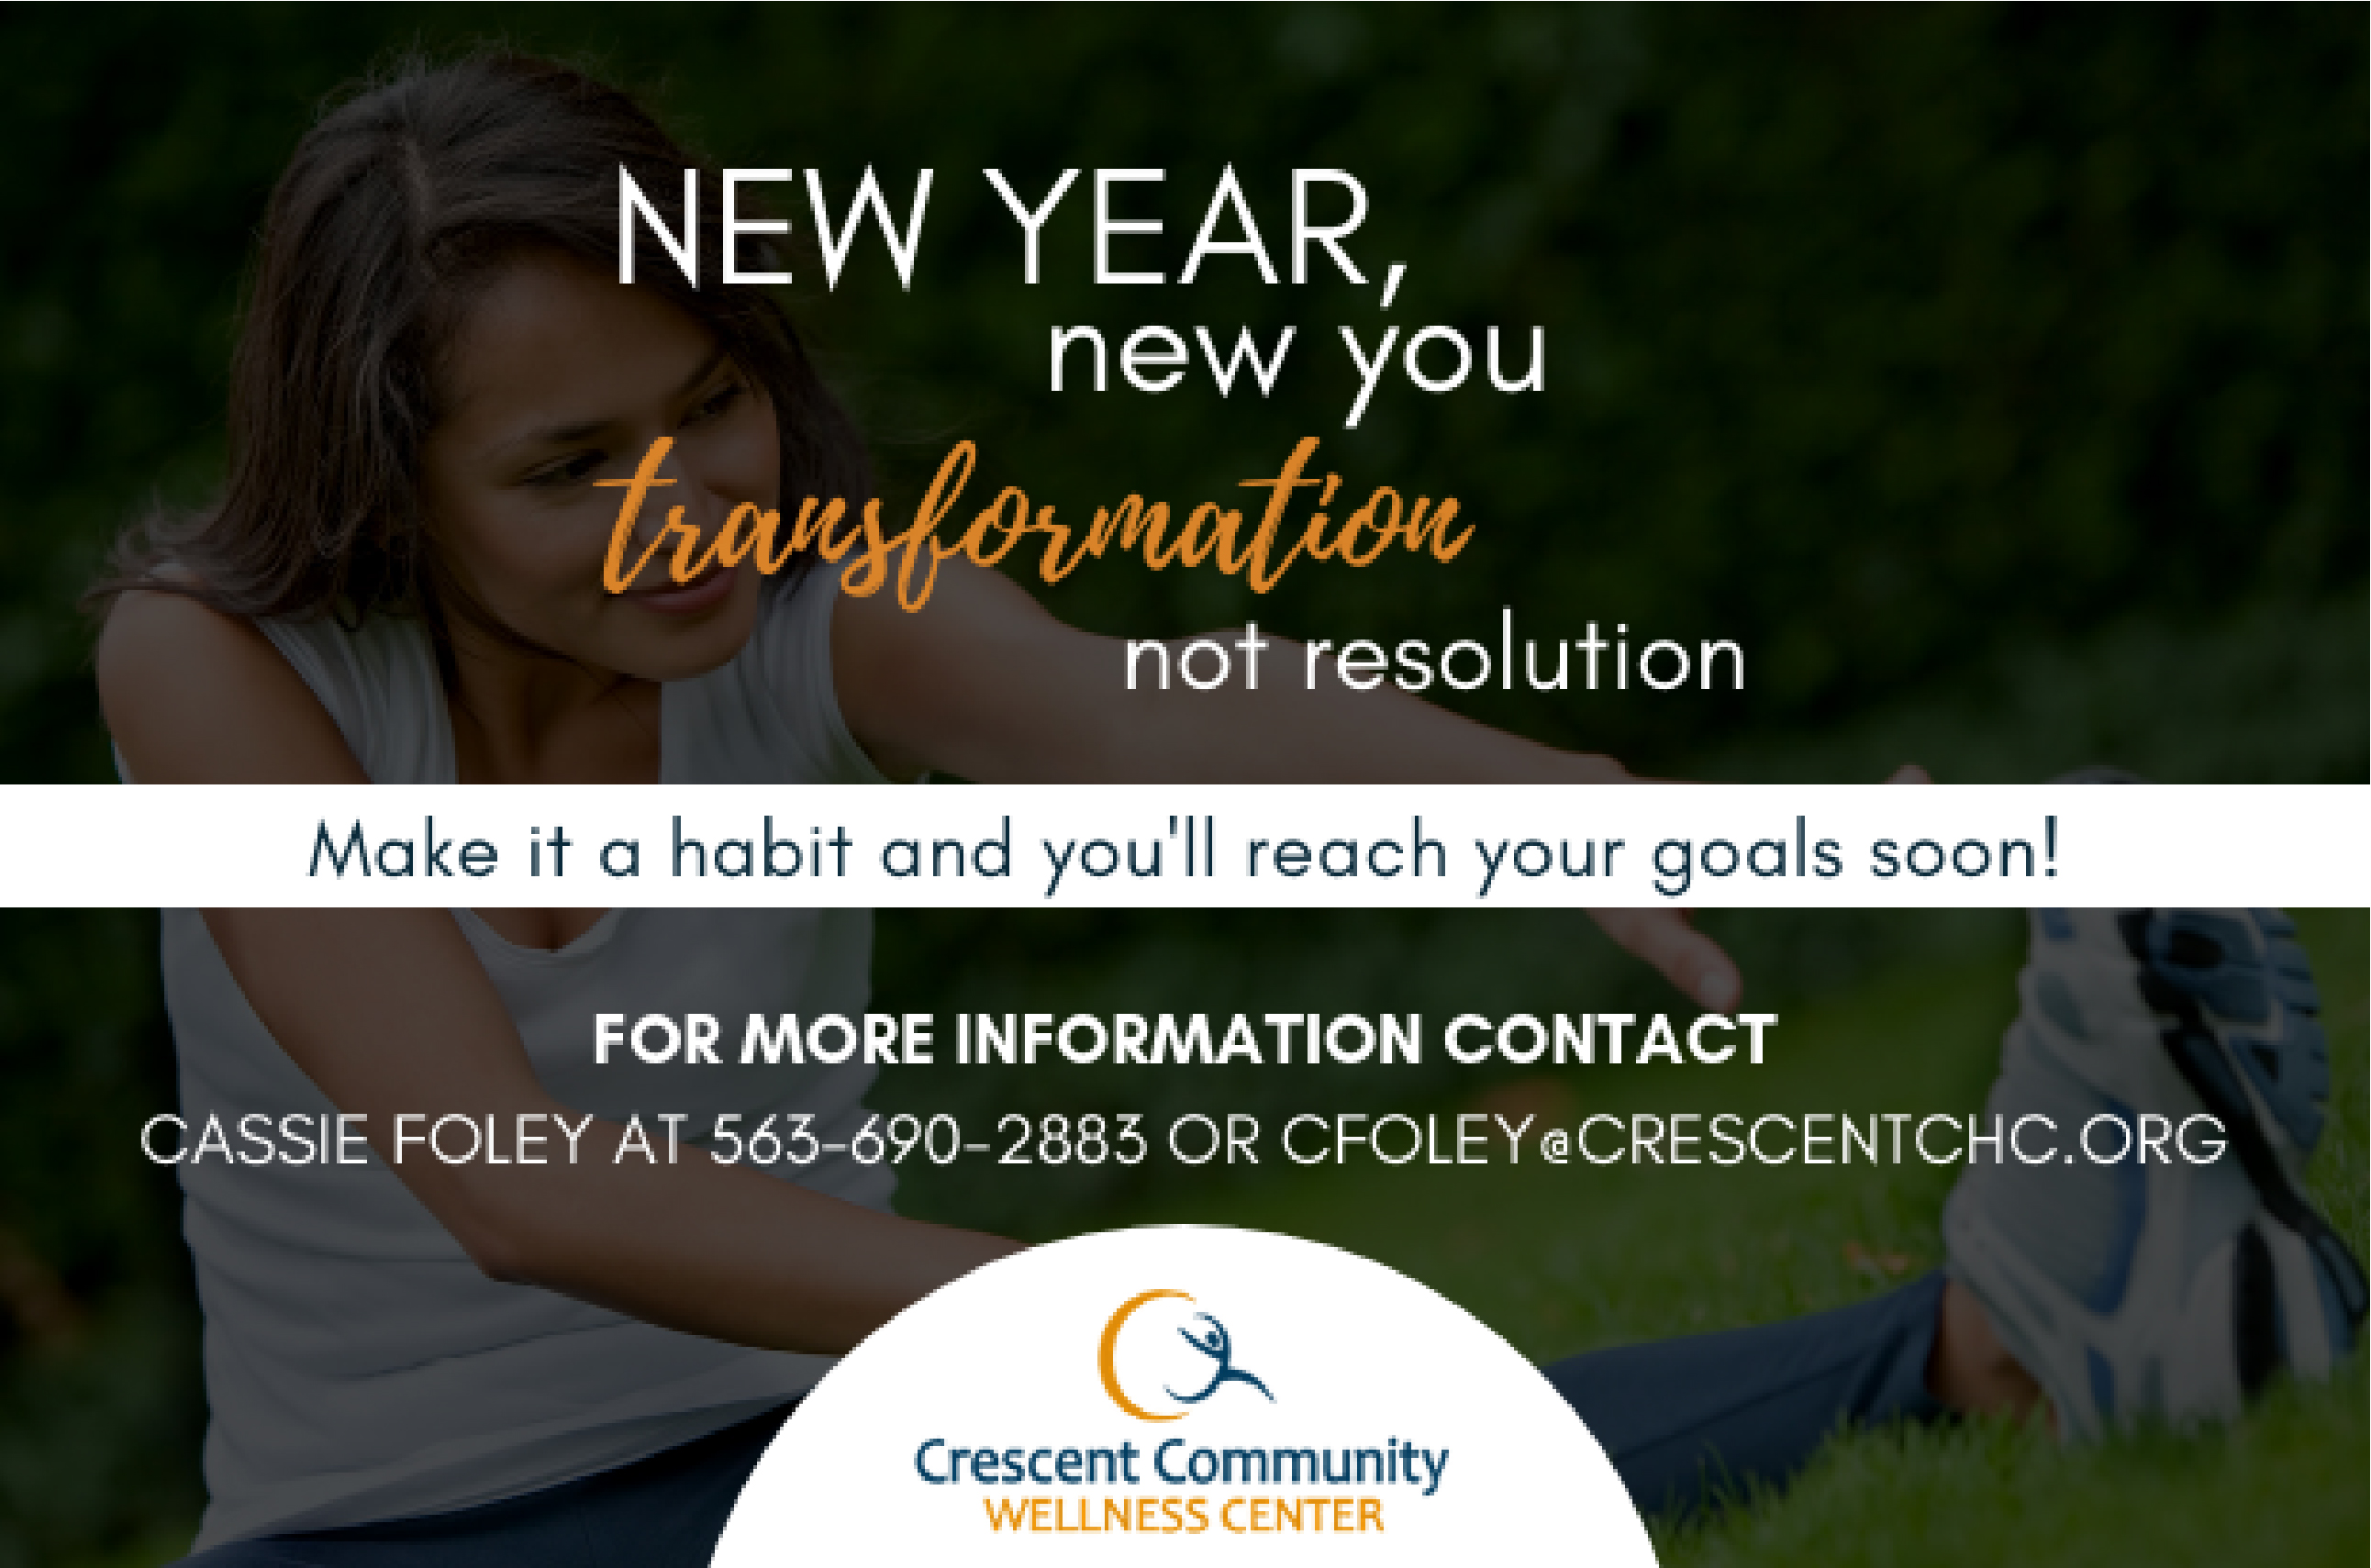 Begin your health and wellness transformation with Crescent!